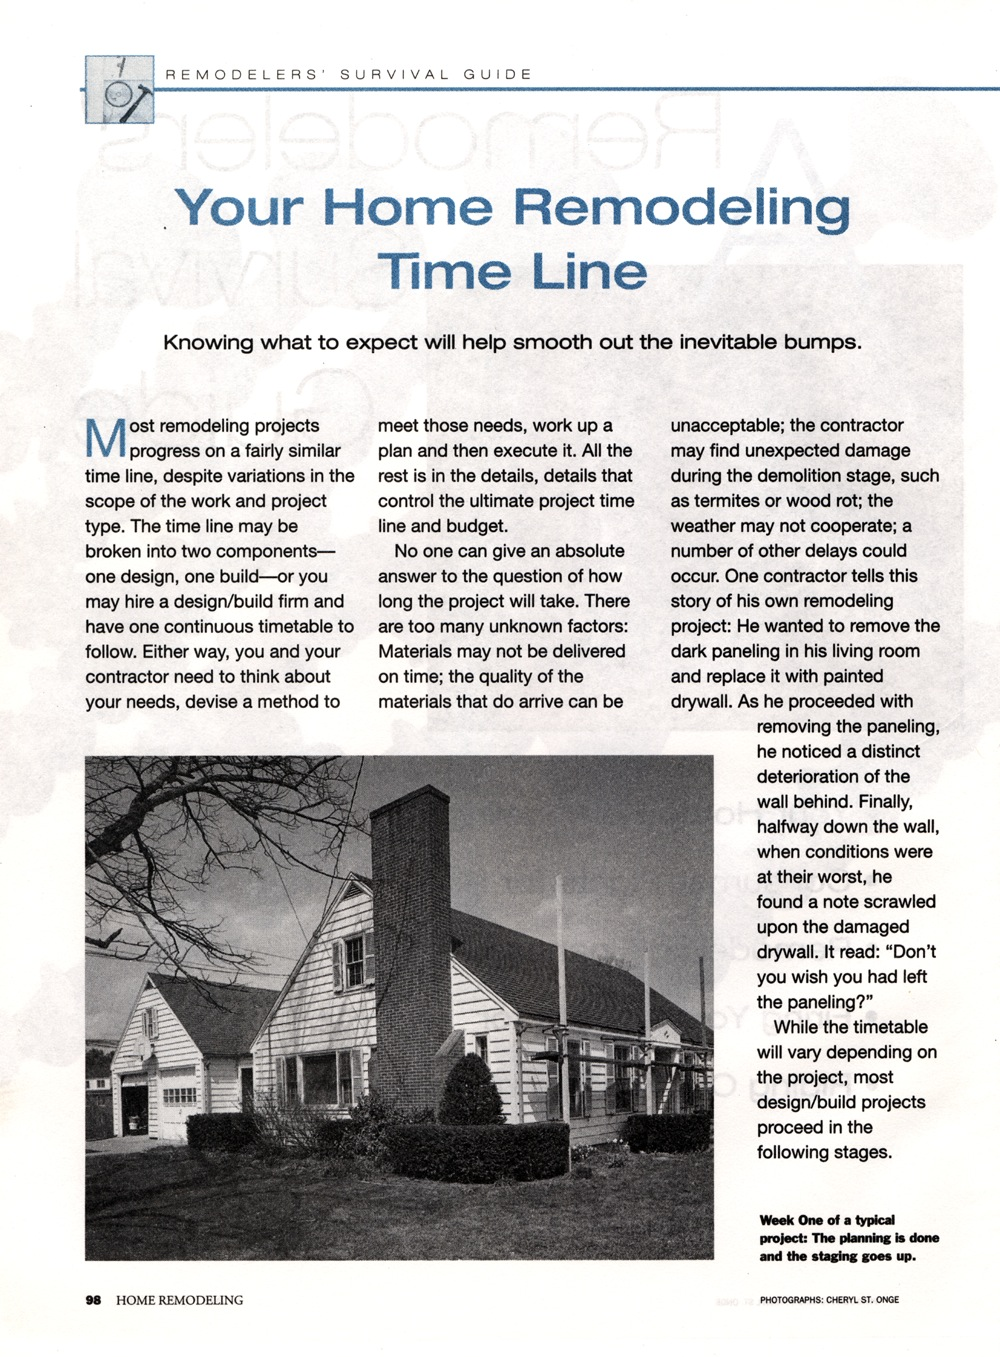 Home Remodeling Magazine - Page 1.jpg